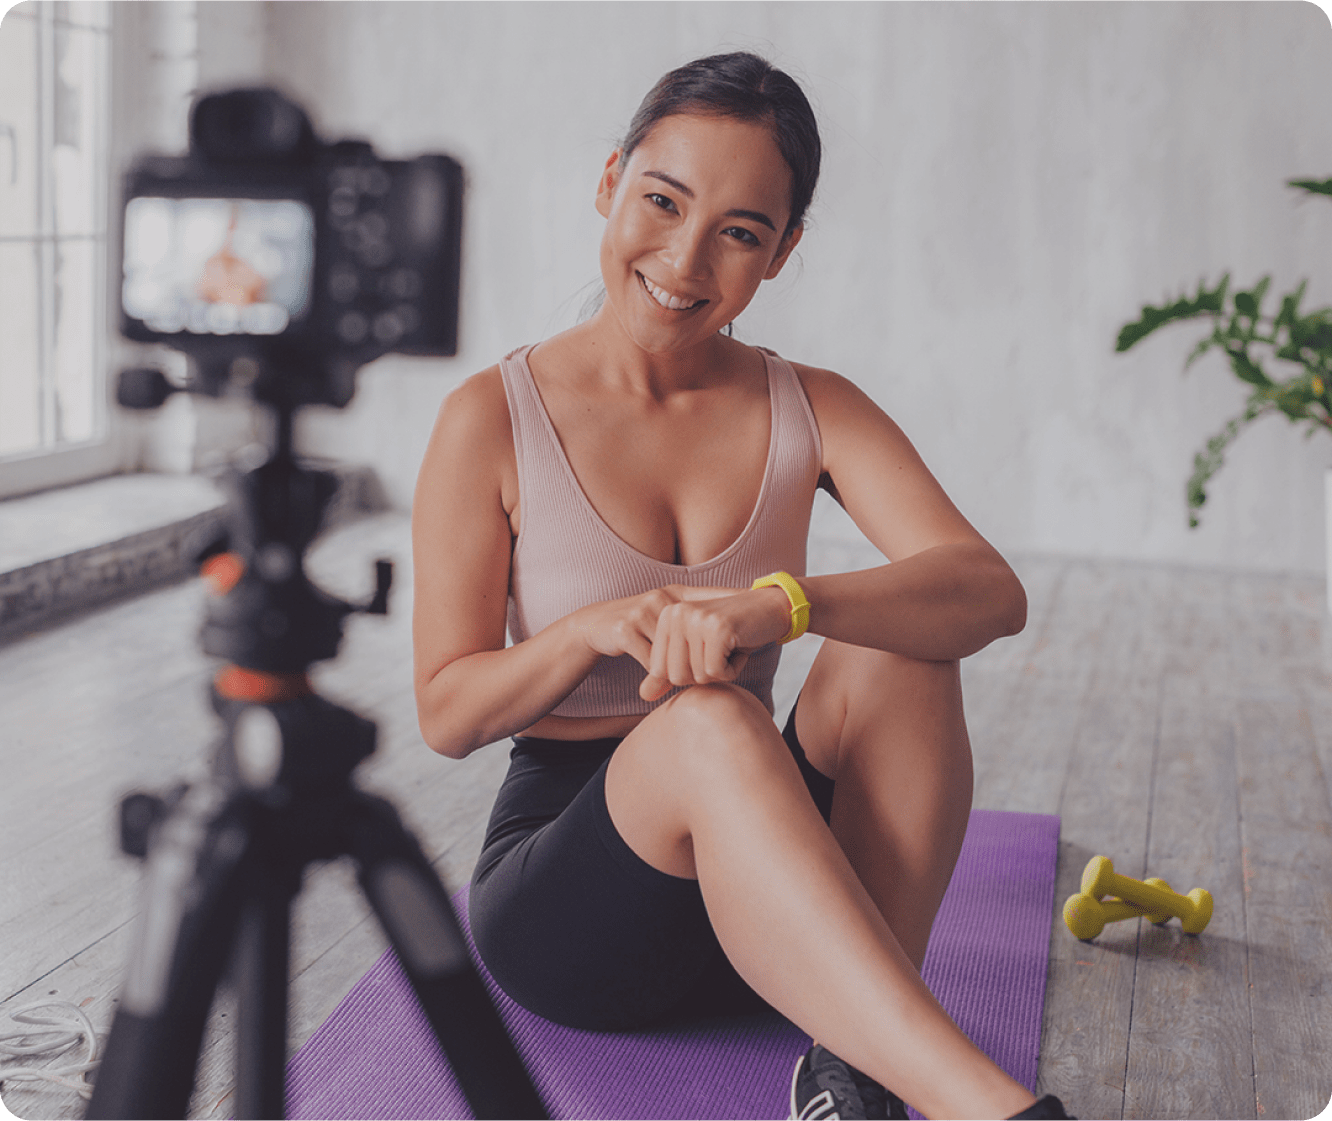 Asian woman live streaming a yoga class